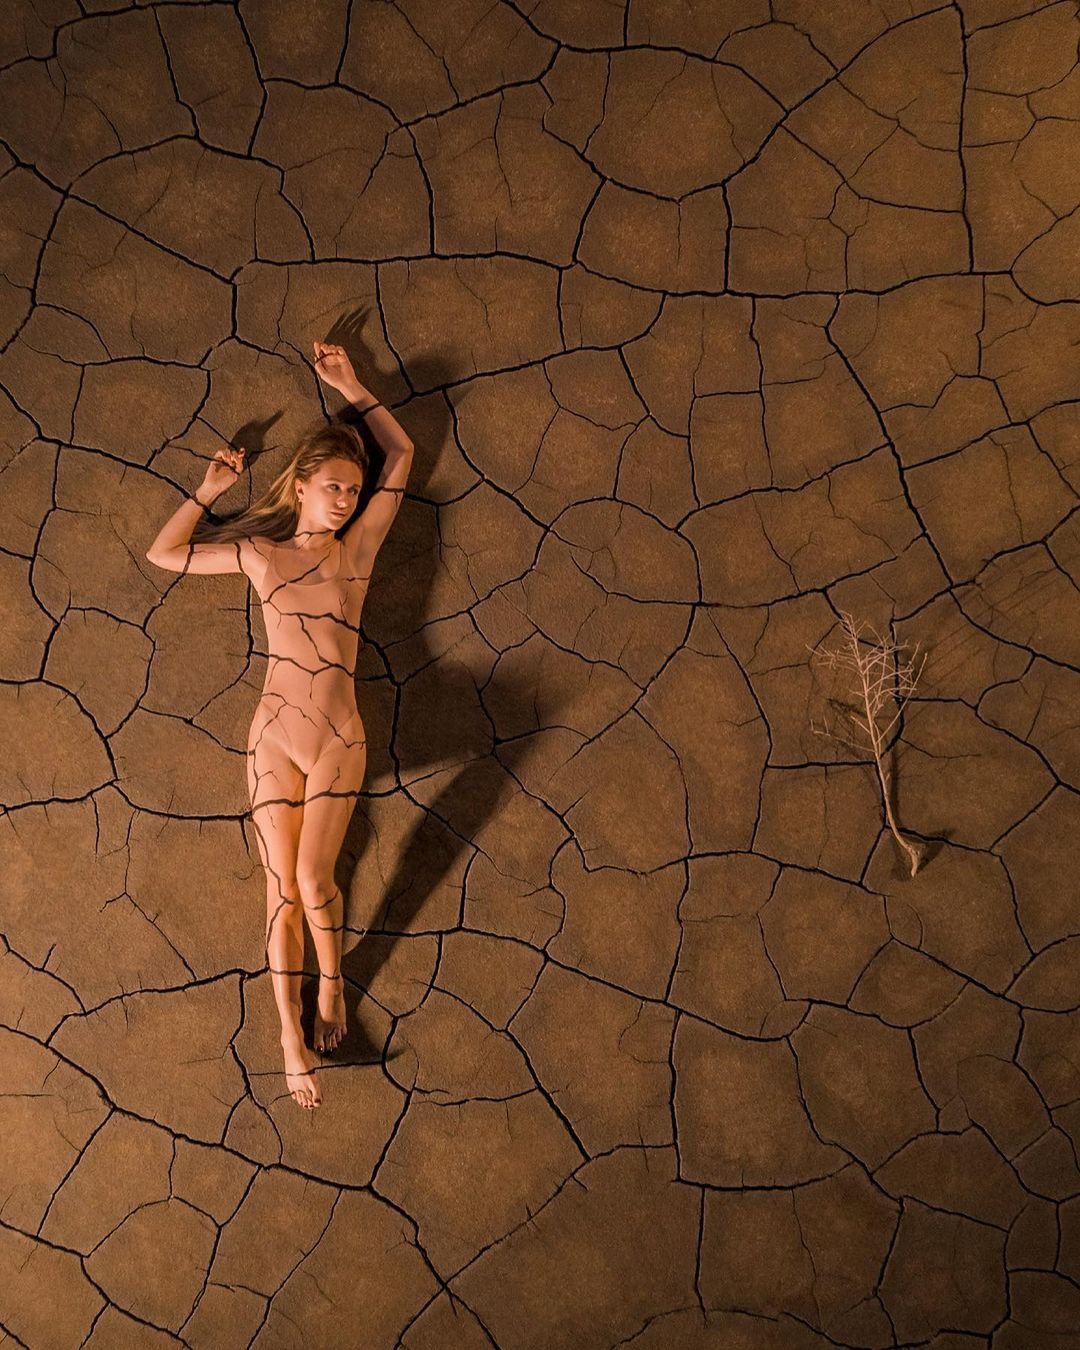 woman laying on dry and cracked dirt